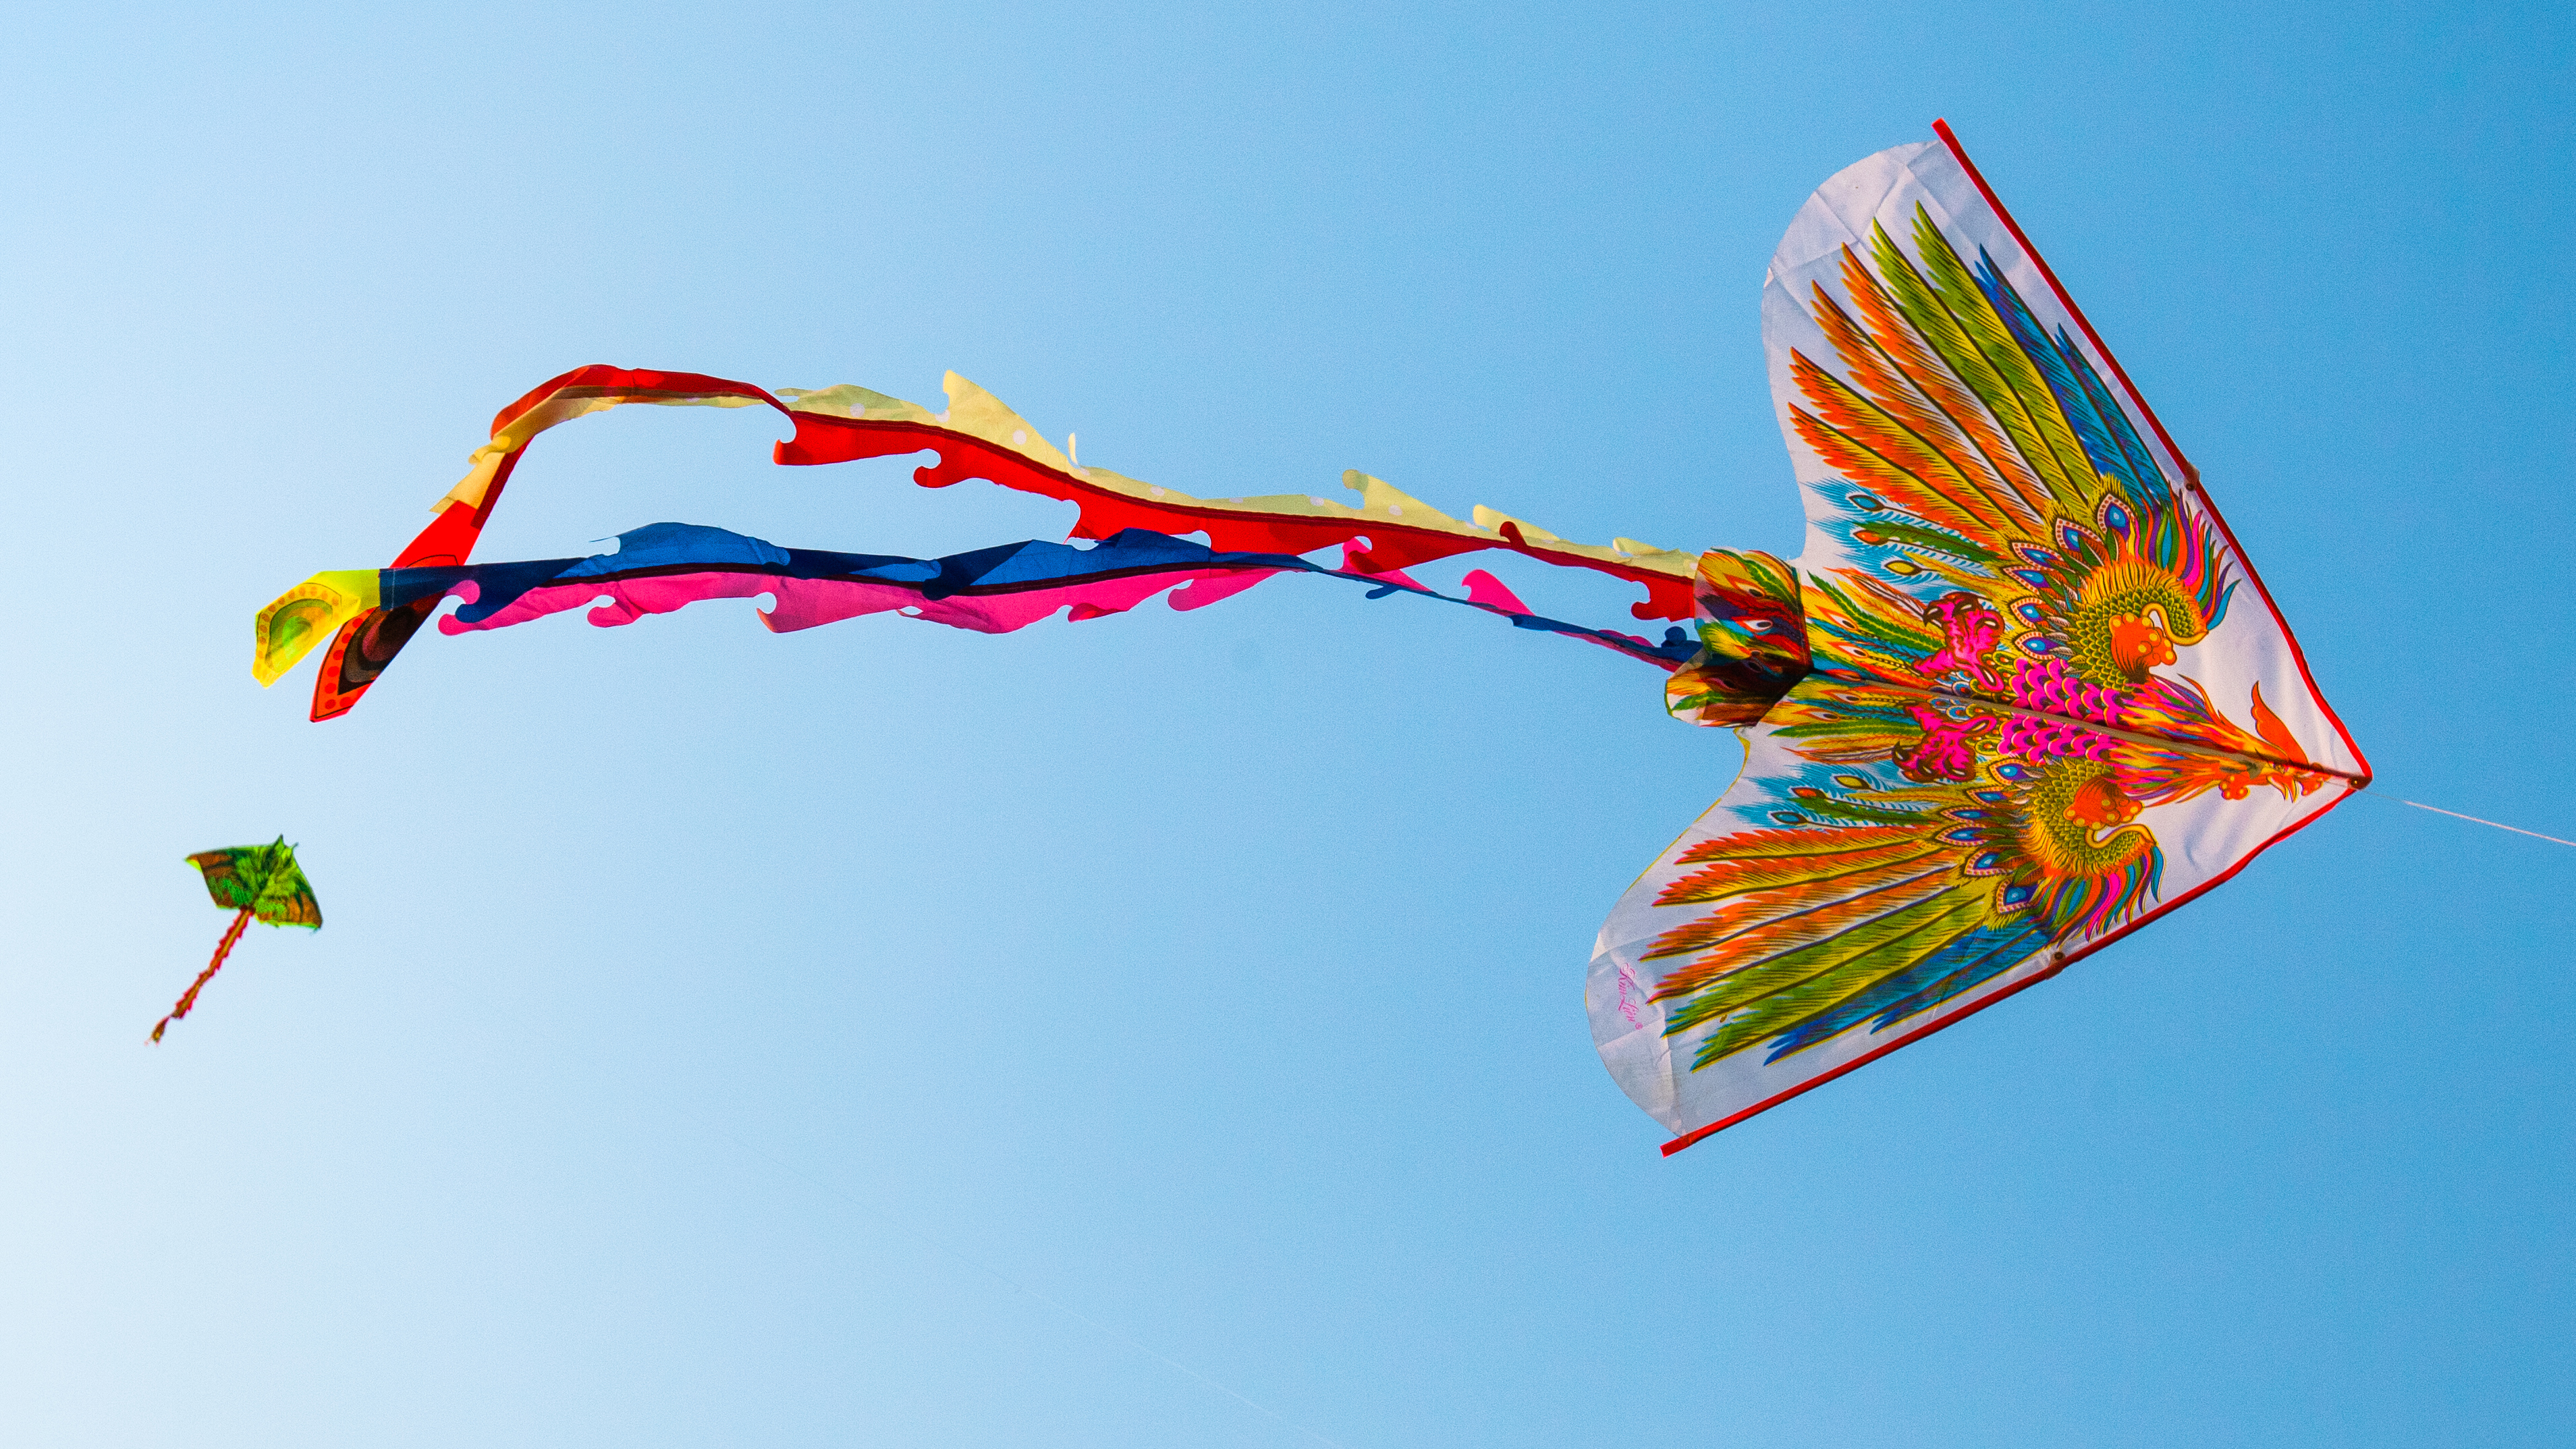 Kite Flying Spring Activities